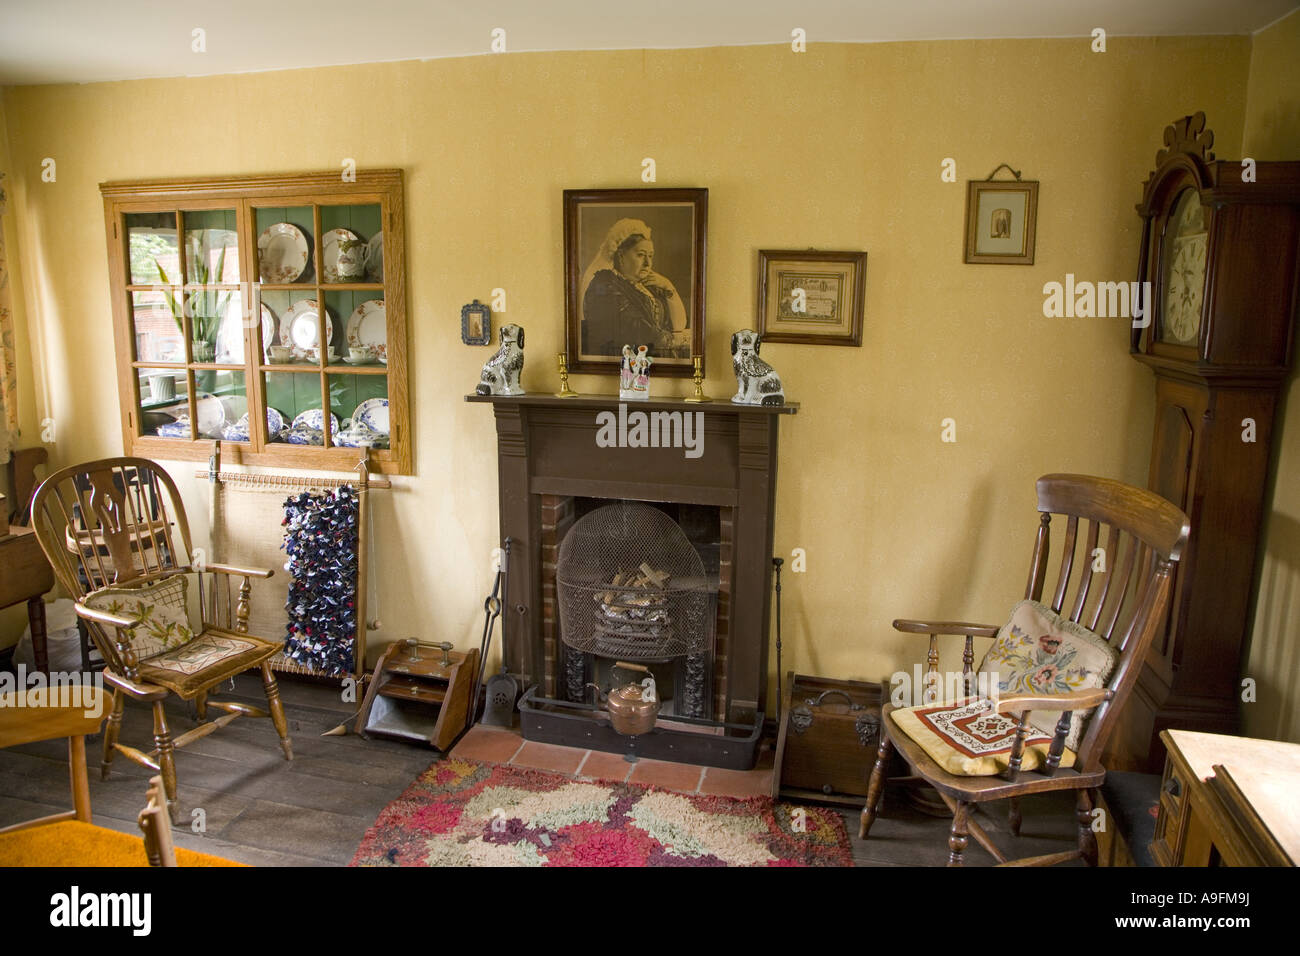 English Farmhouse Interiors Victorian Farmhouse Living Room Stock Photo 12353261 Alamy